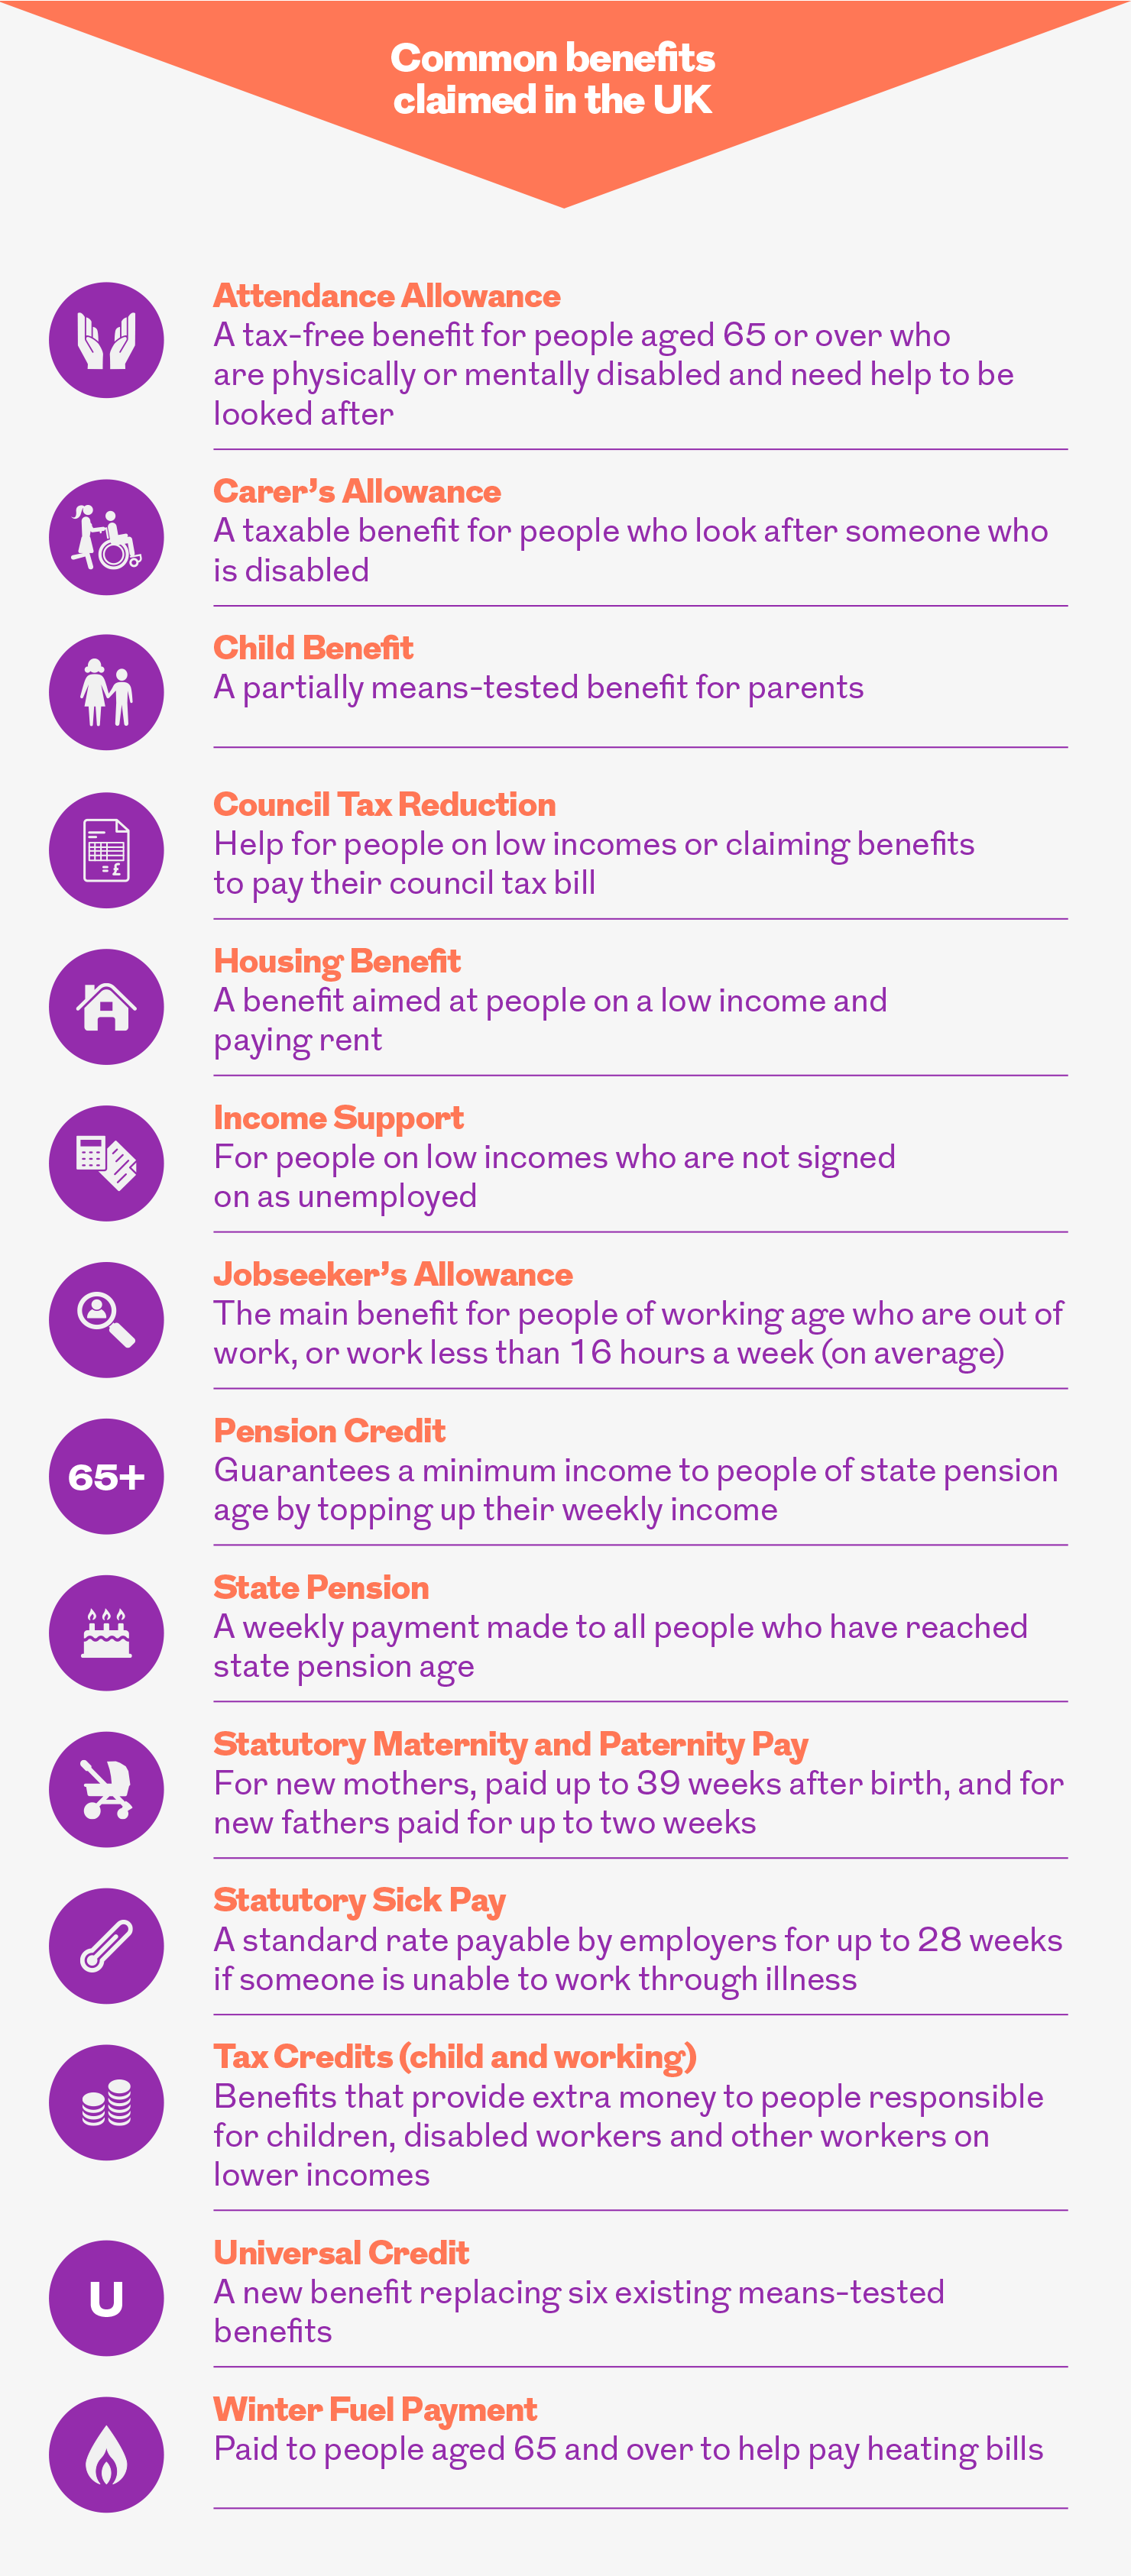 Common benefits claimed in the UK. This image is an infographic and has alternative text available if you are using a screen reader.